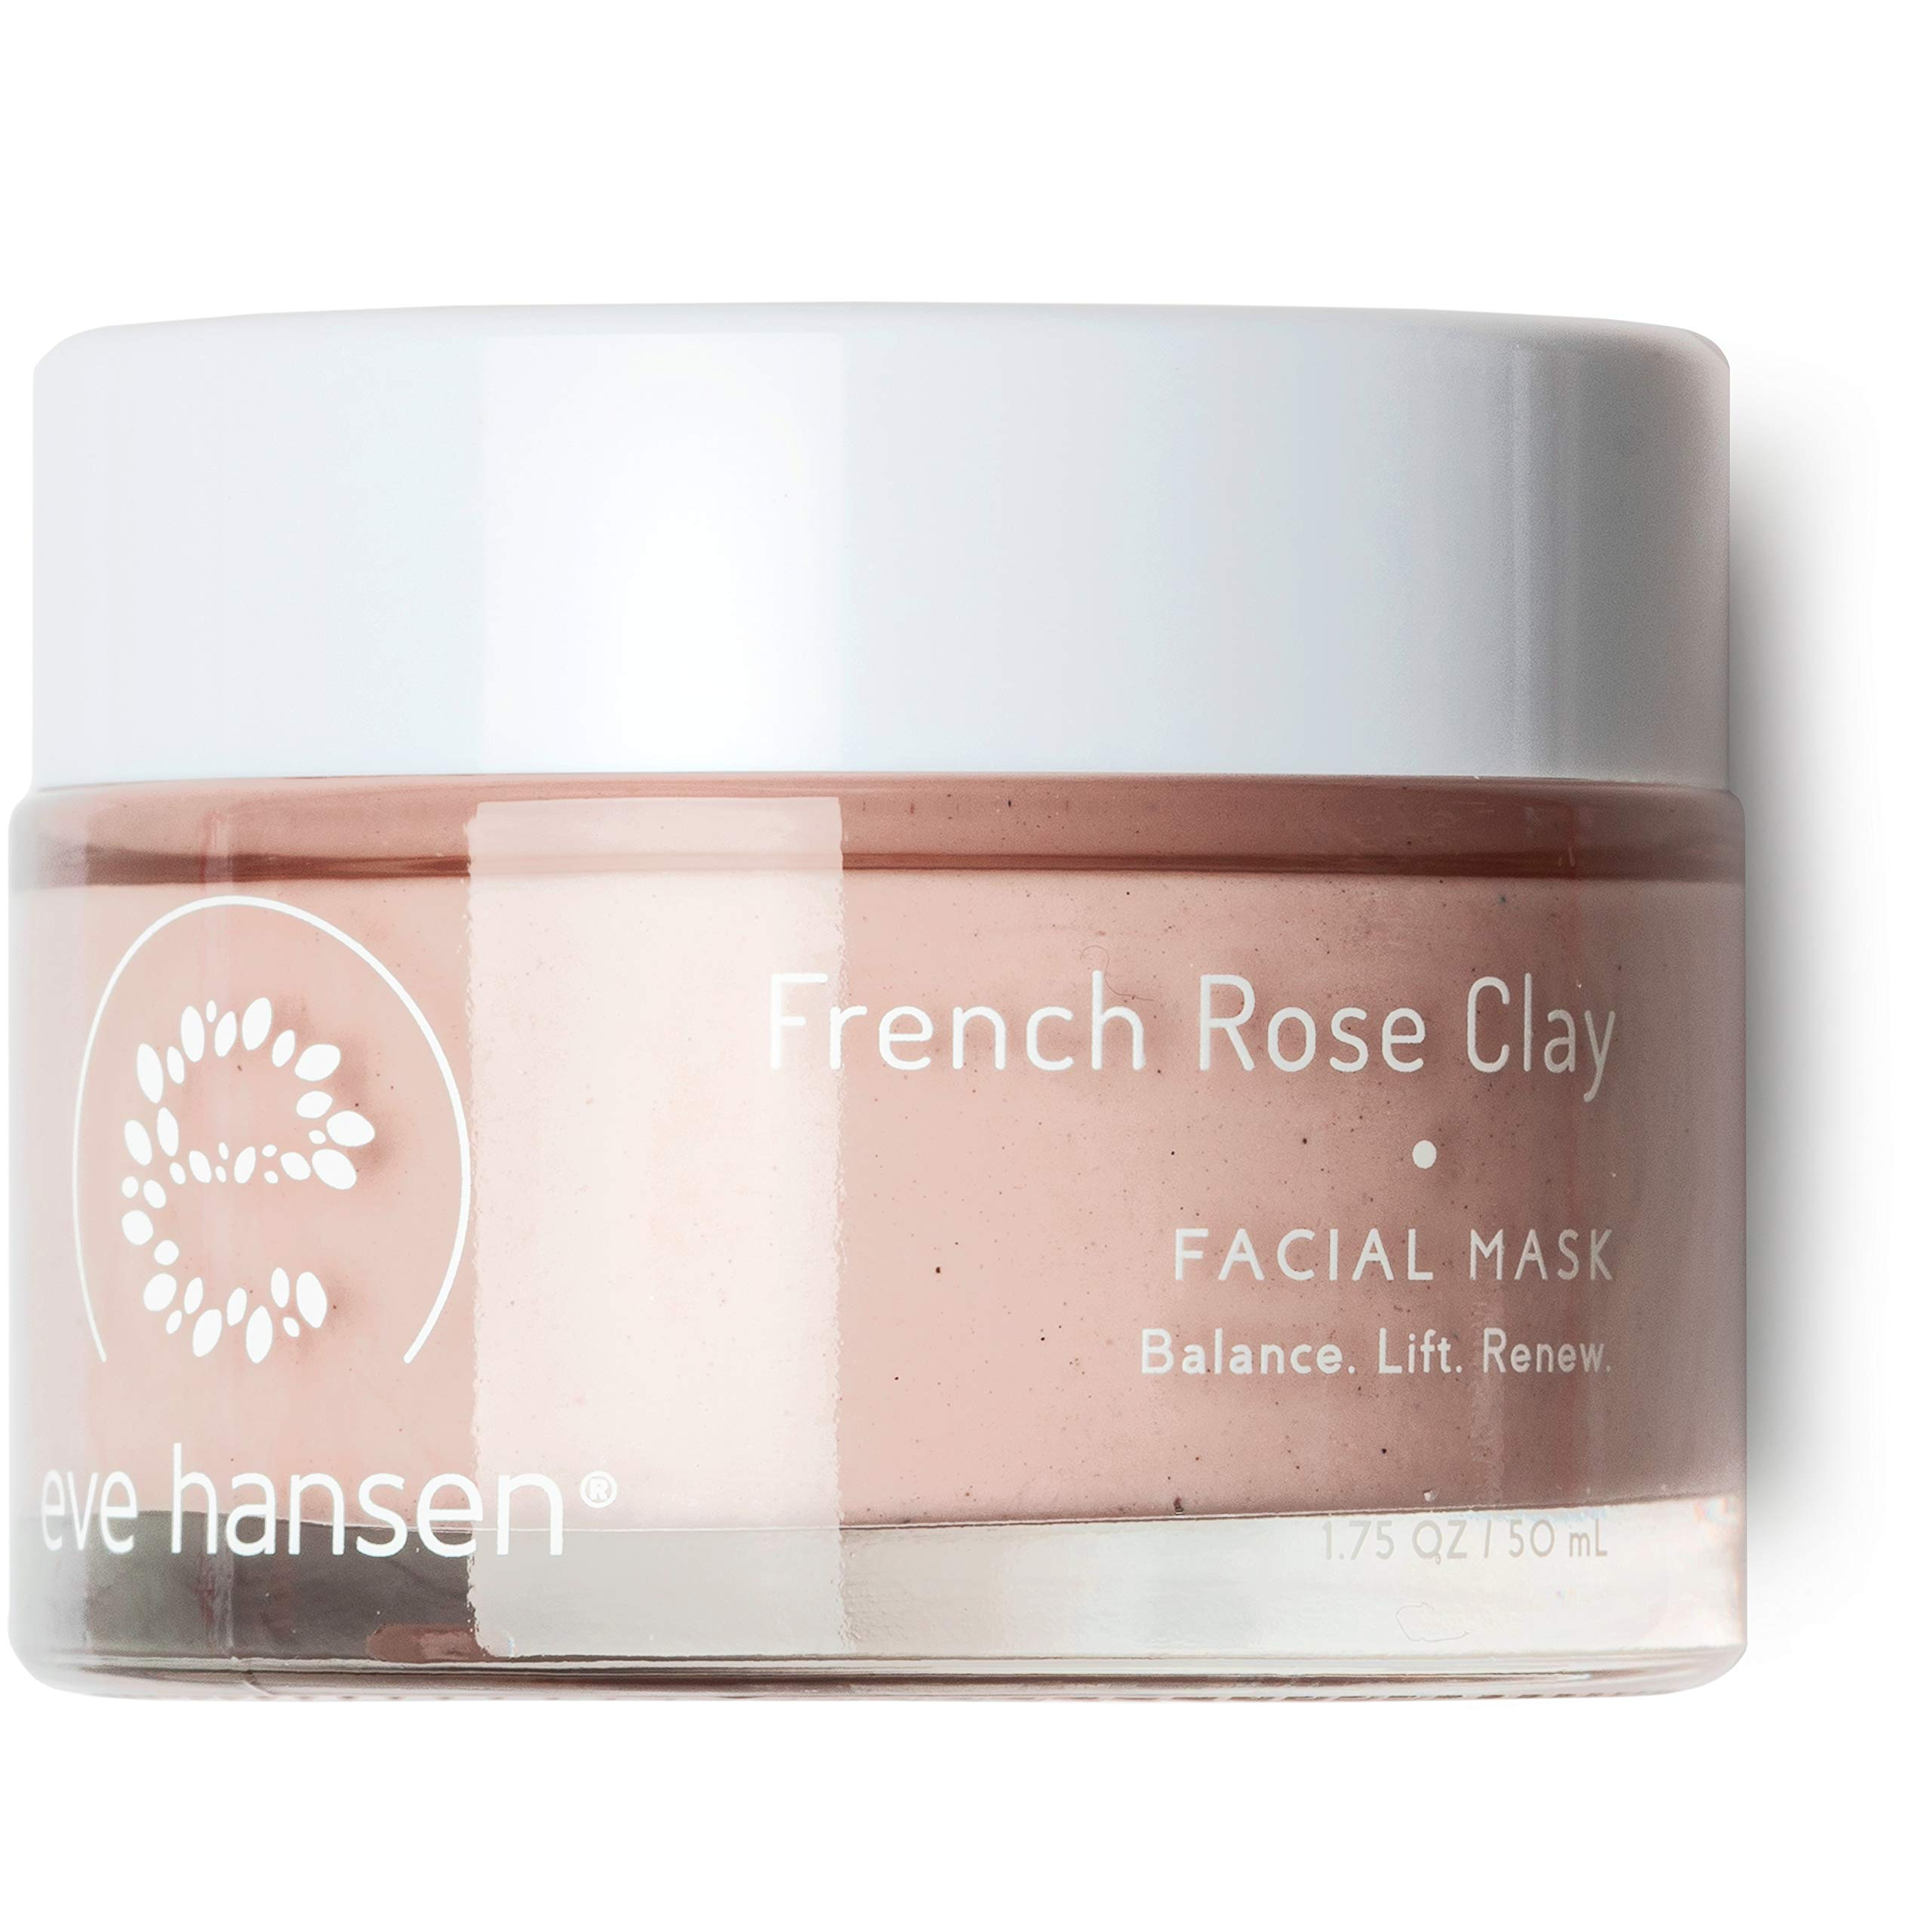 Eve Hansen French Rose Clay Face Mask - Resurfacing Pink Clay Mask with Bentonite, Kaolin, Rosehip, Moringa for Clogged Pores, Blackheads, Acne Scars, Dark Spots - 1.7oz